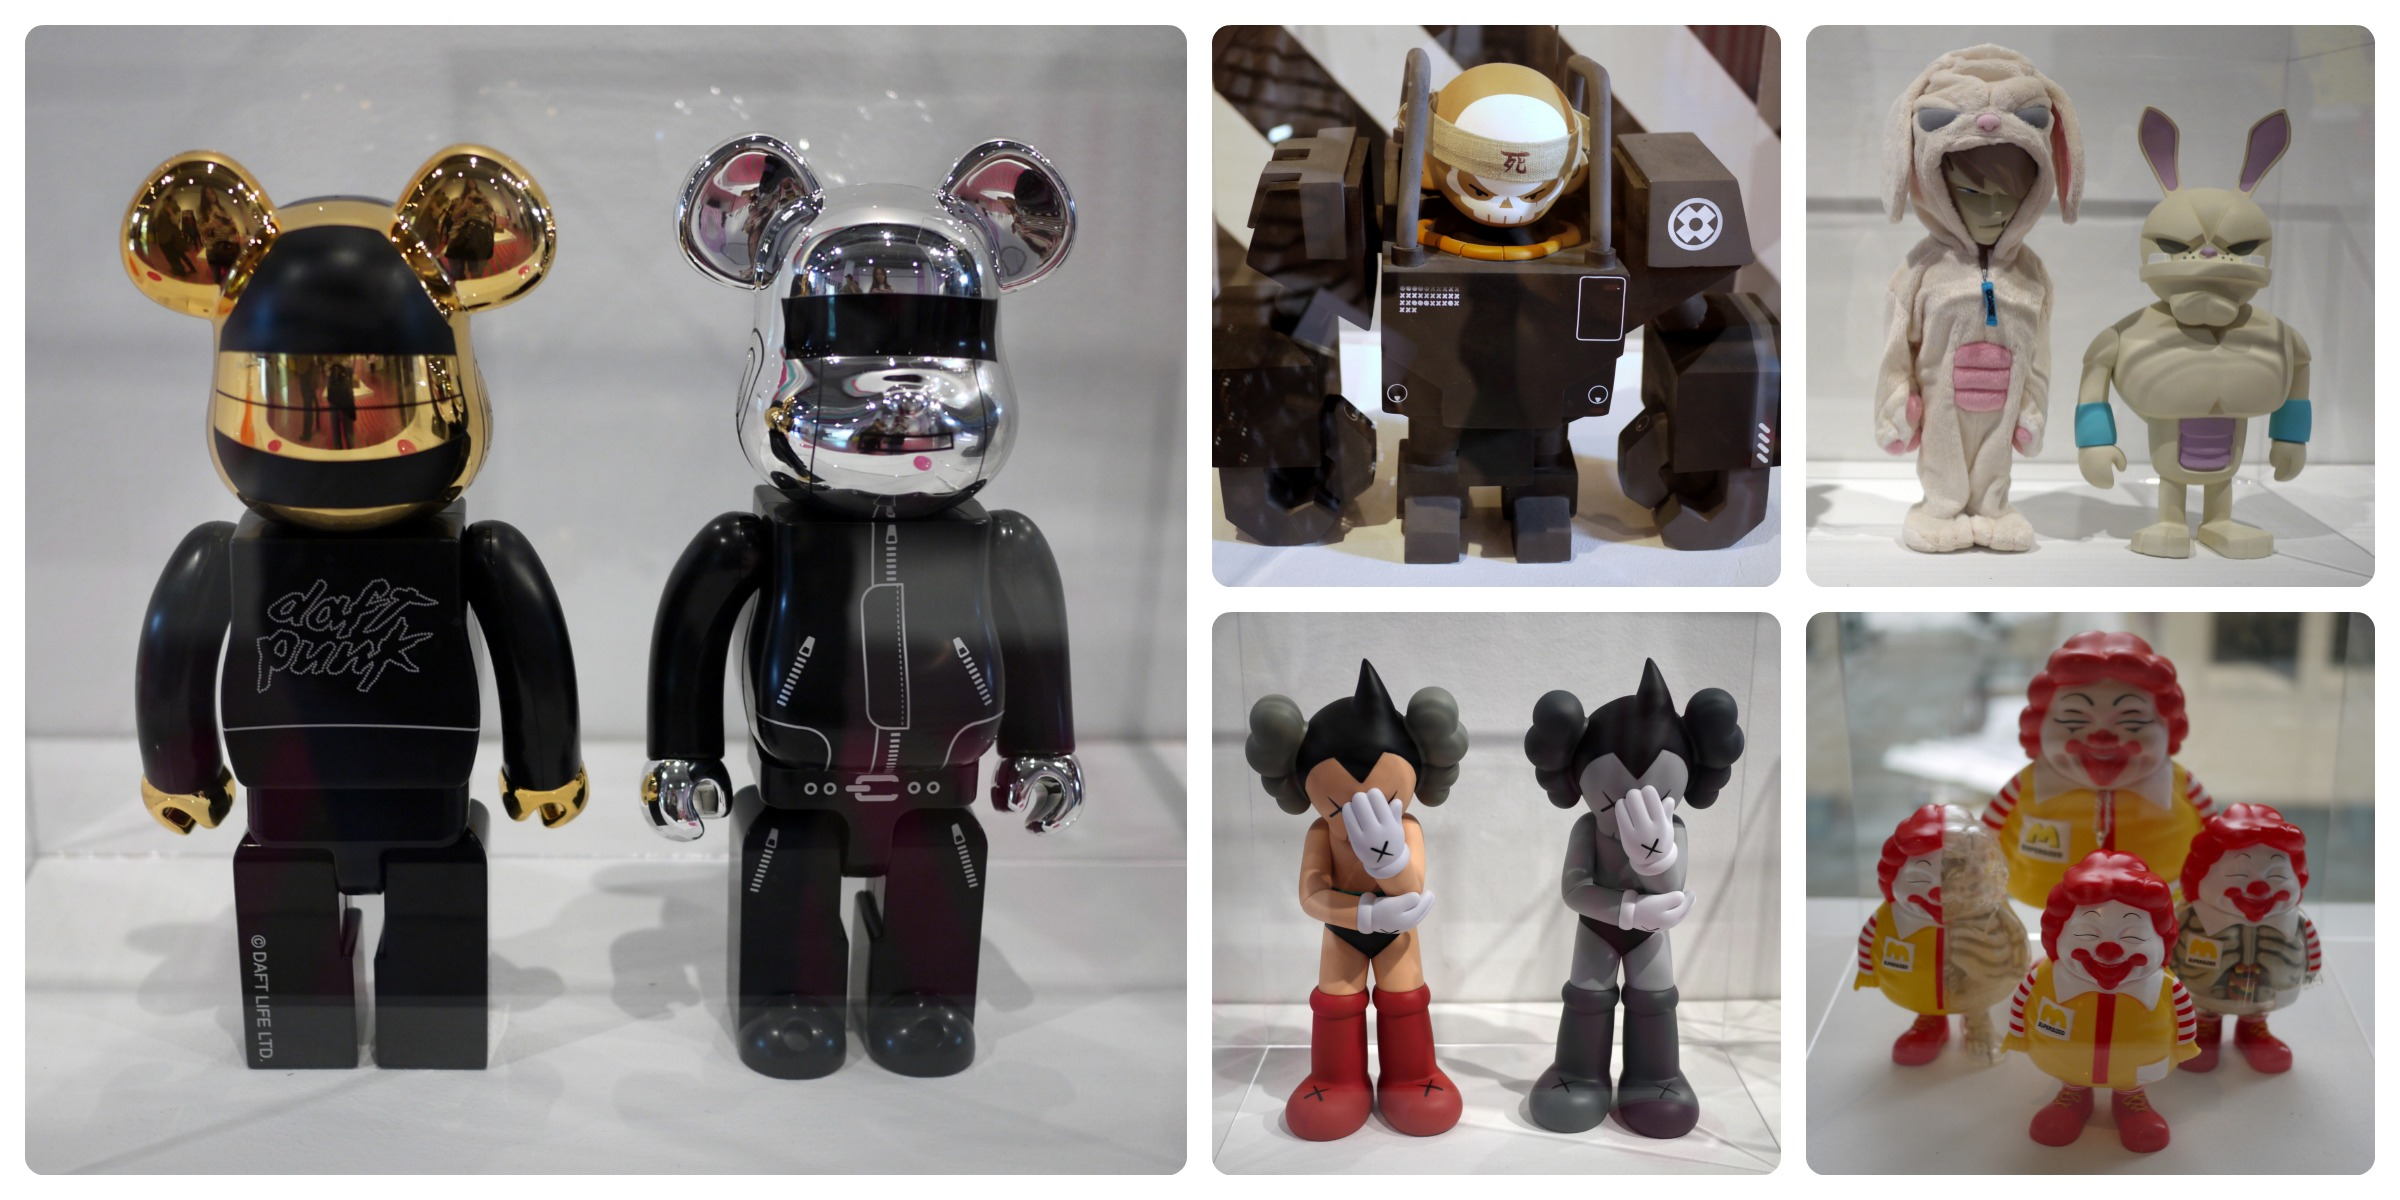 This Is Not A Toy: Designer Toys